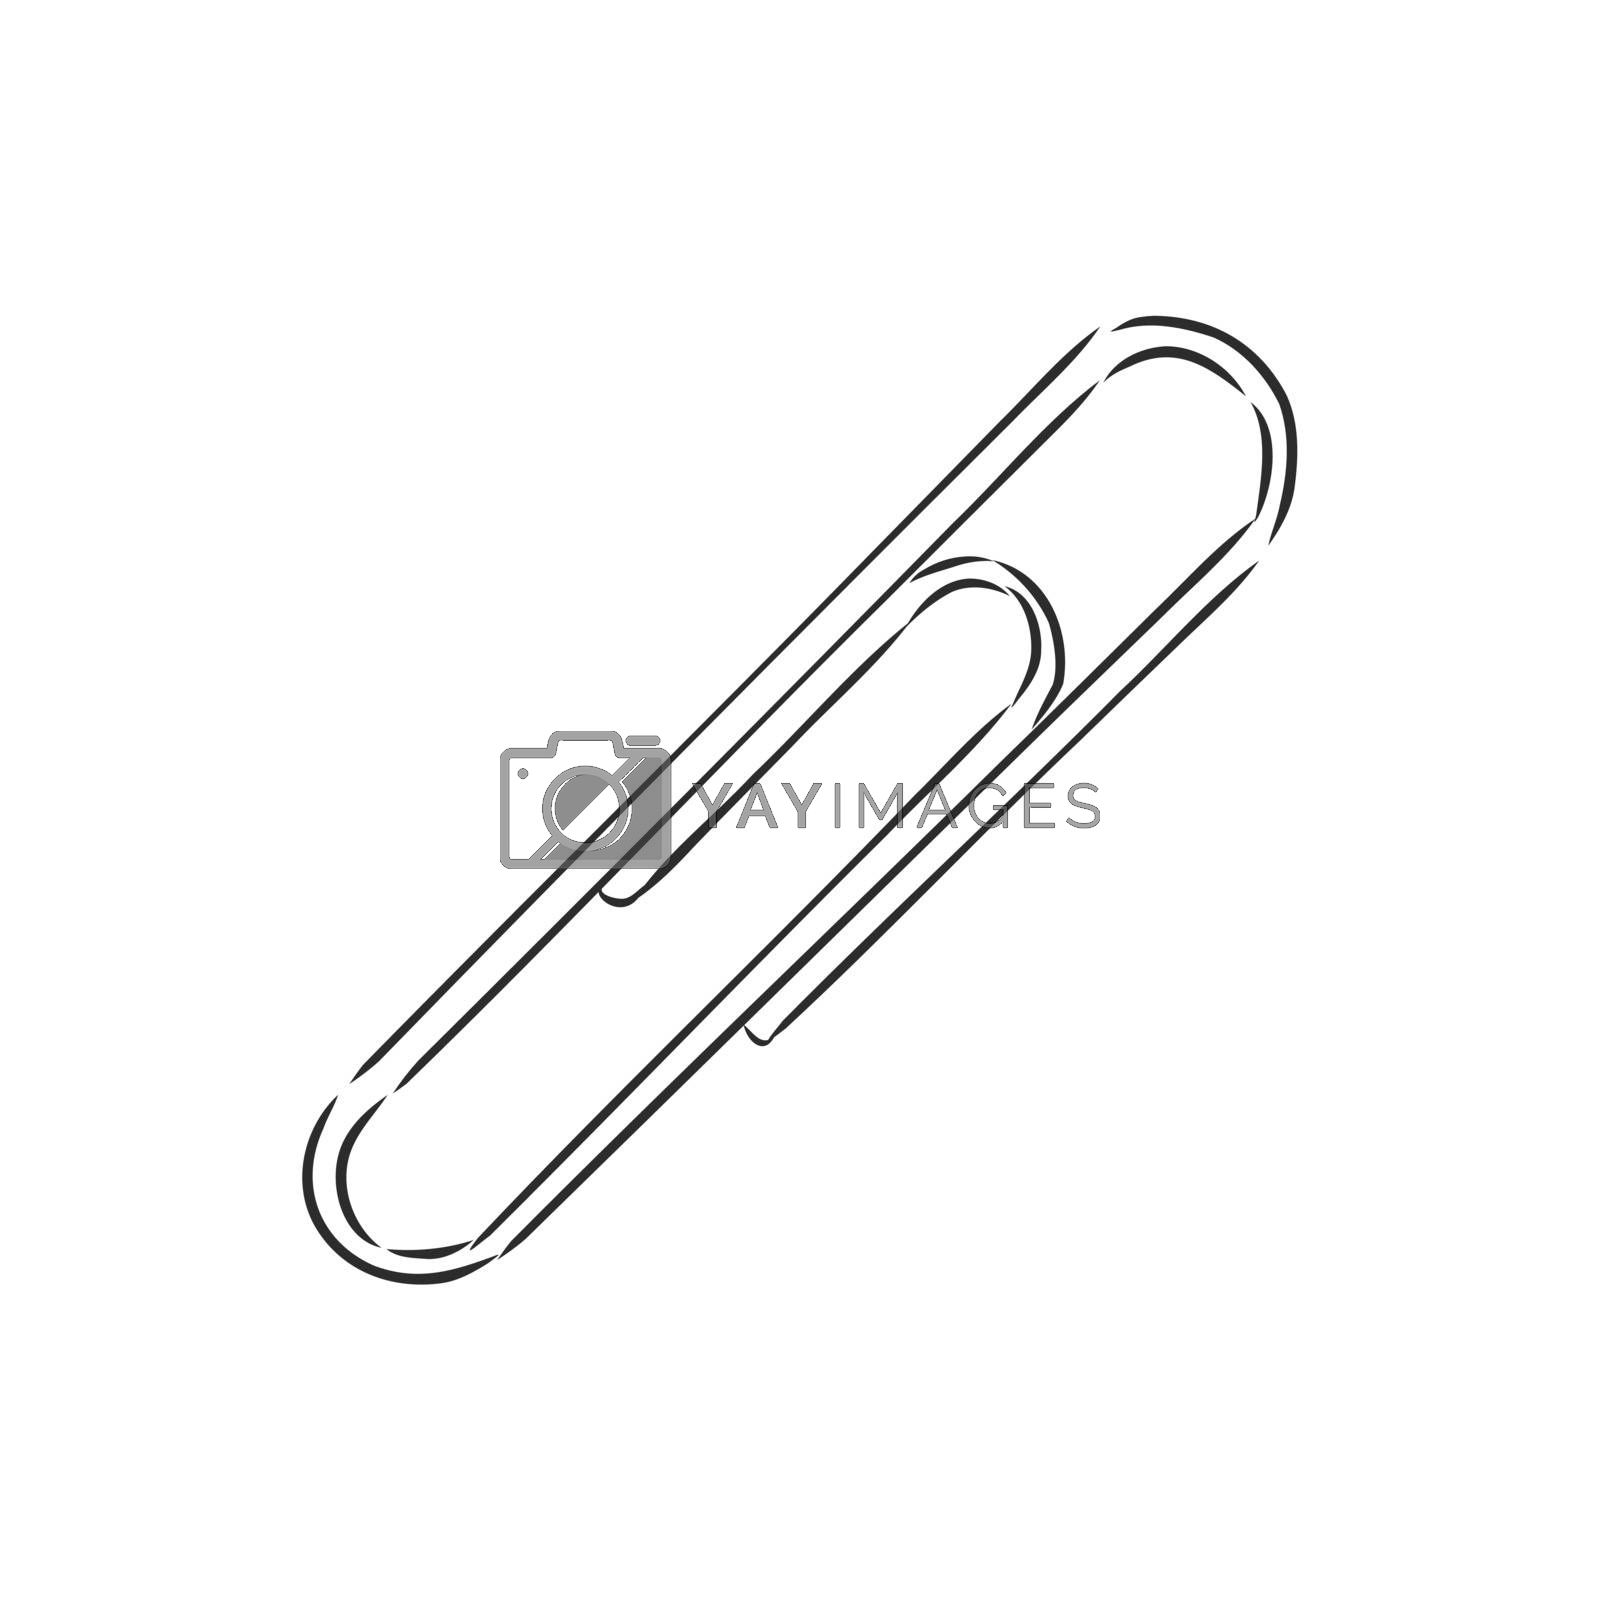 Paper clip symbol. Isolated sketch icon pictogram. Eps 10 vector illustration.